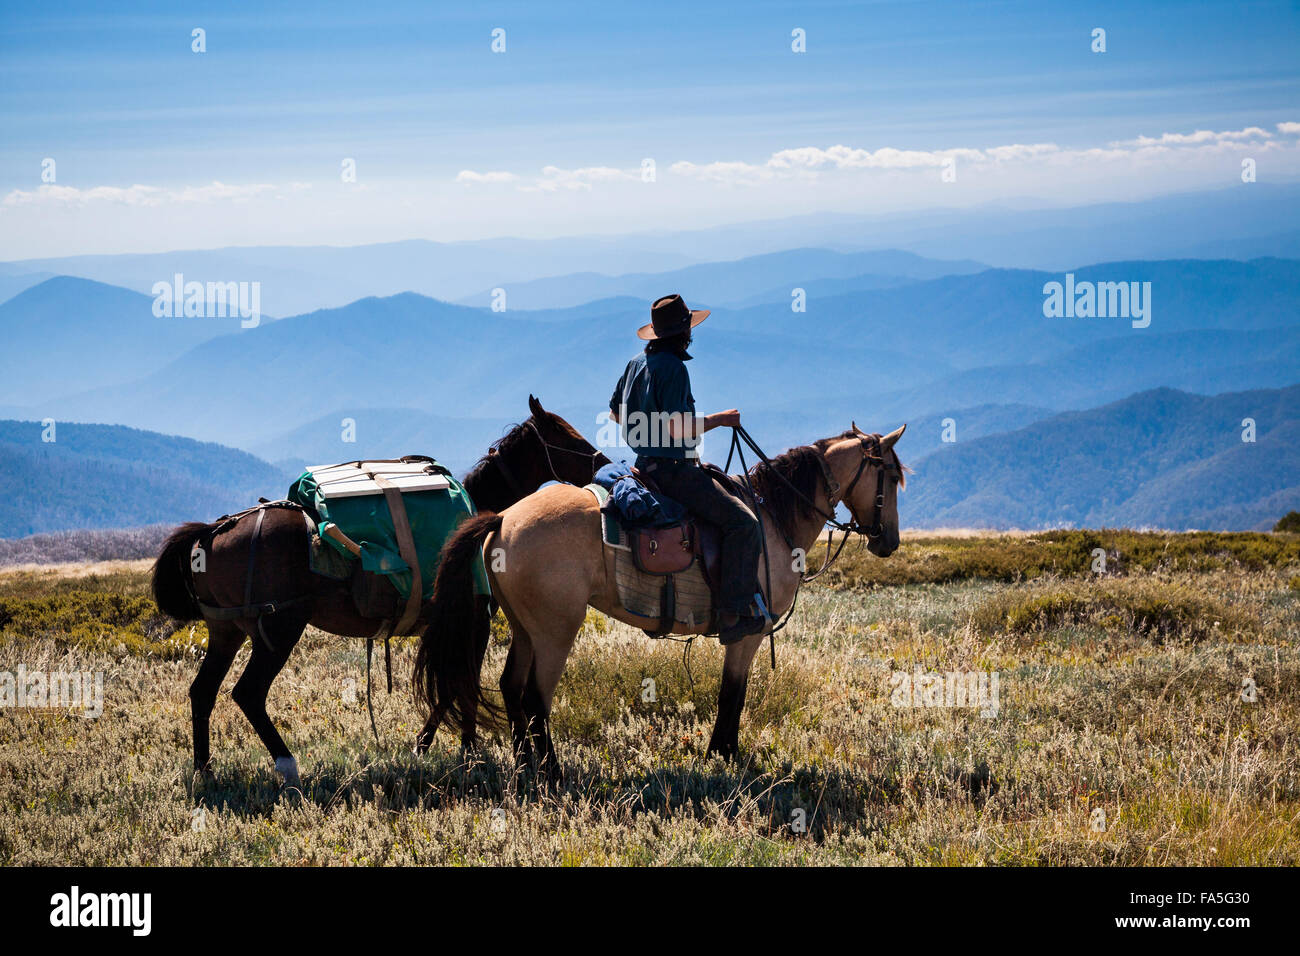 Australian Stockman, Lin Baird, approaches Hell Gap near Mount Bogong in the Victorian High Country. - Stock Image